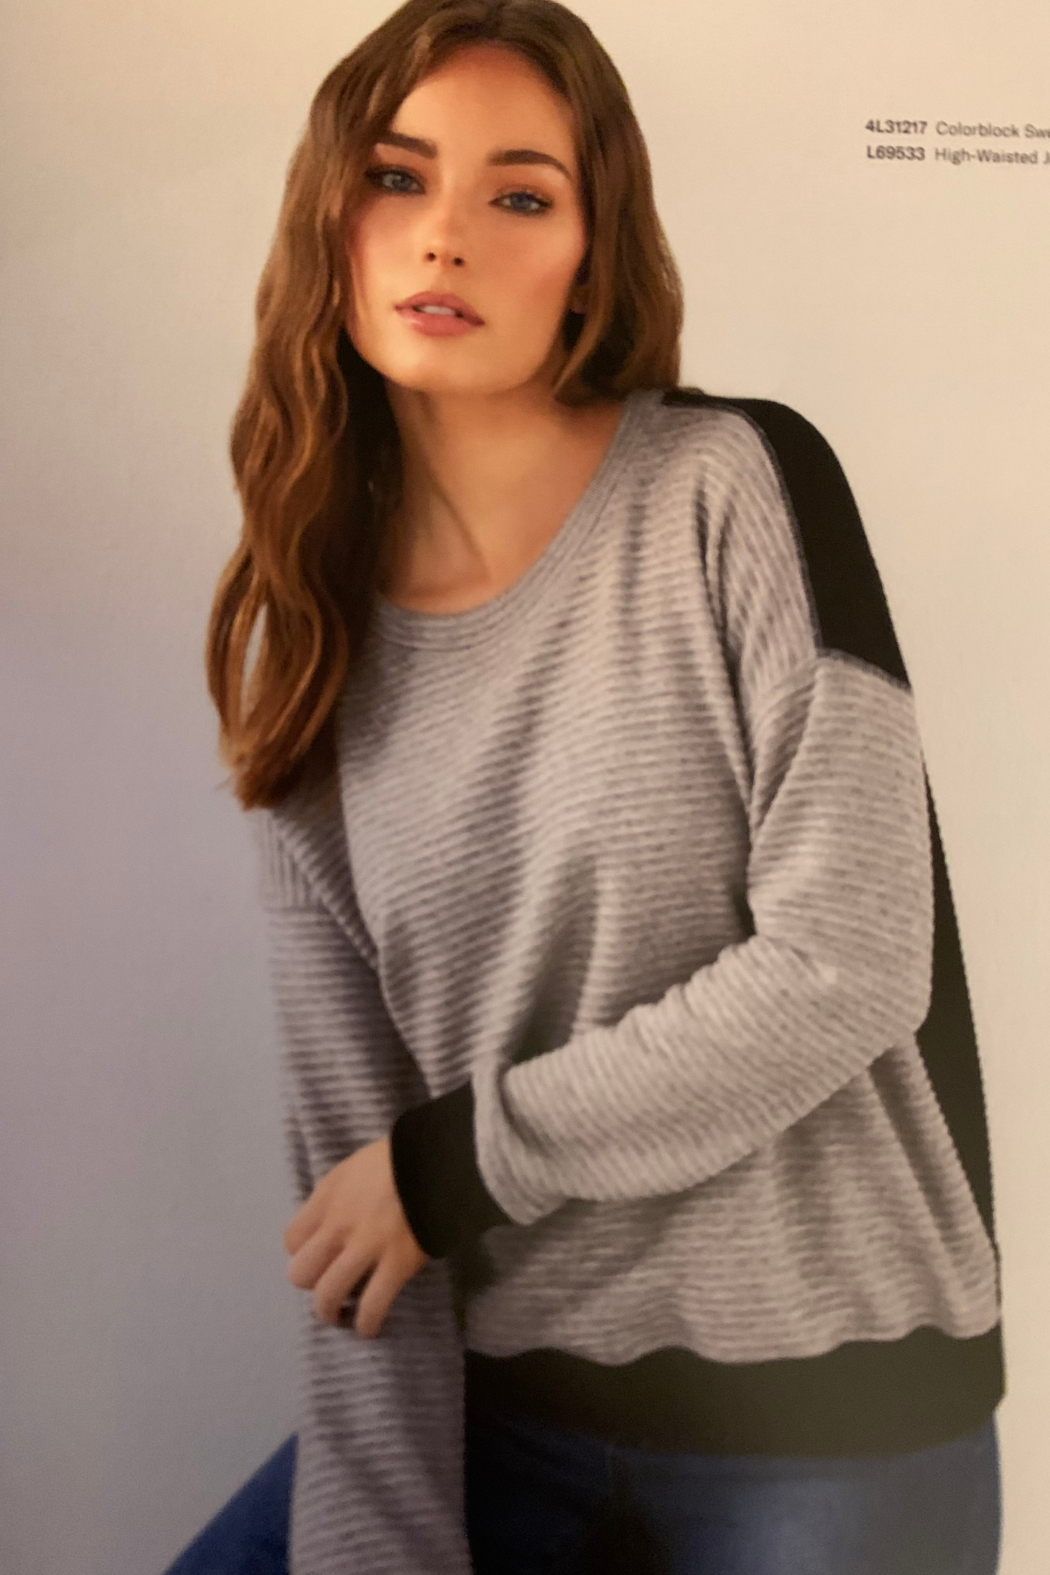 Karen Kane 4L31217 - Colorblock Sweater - Main Image